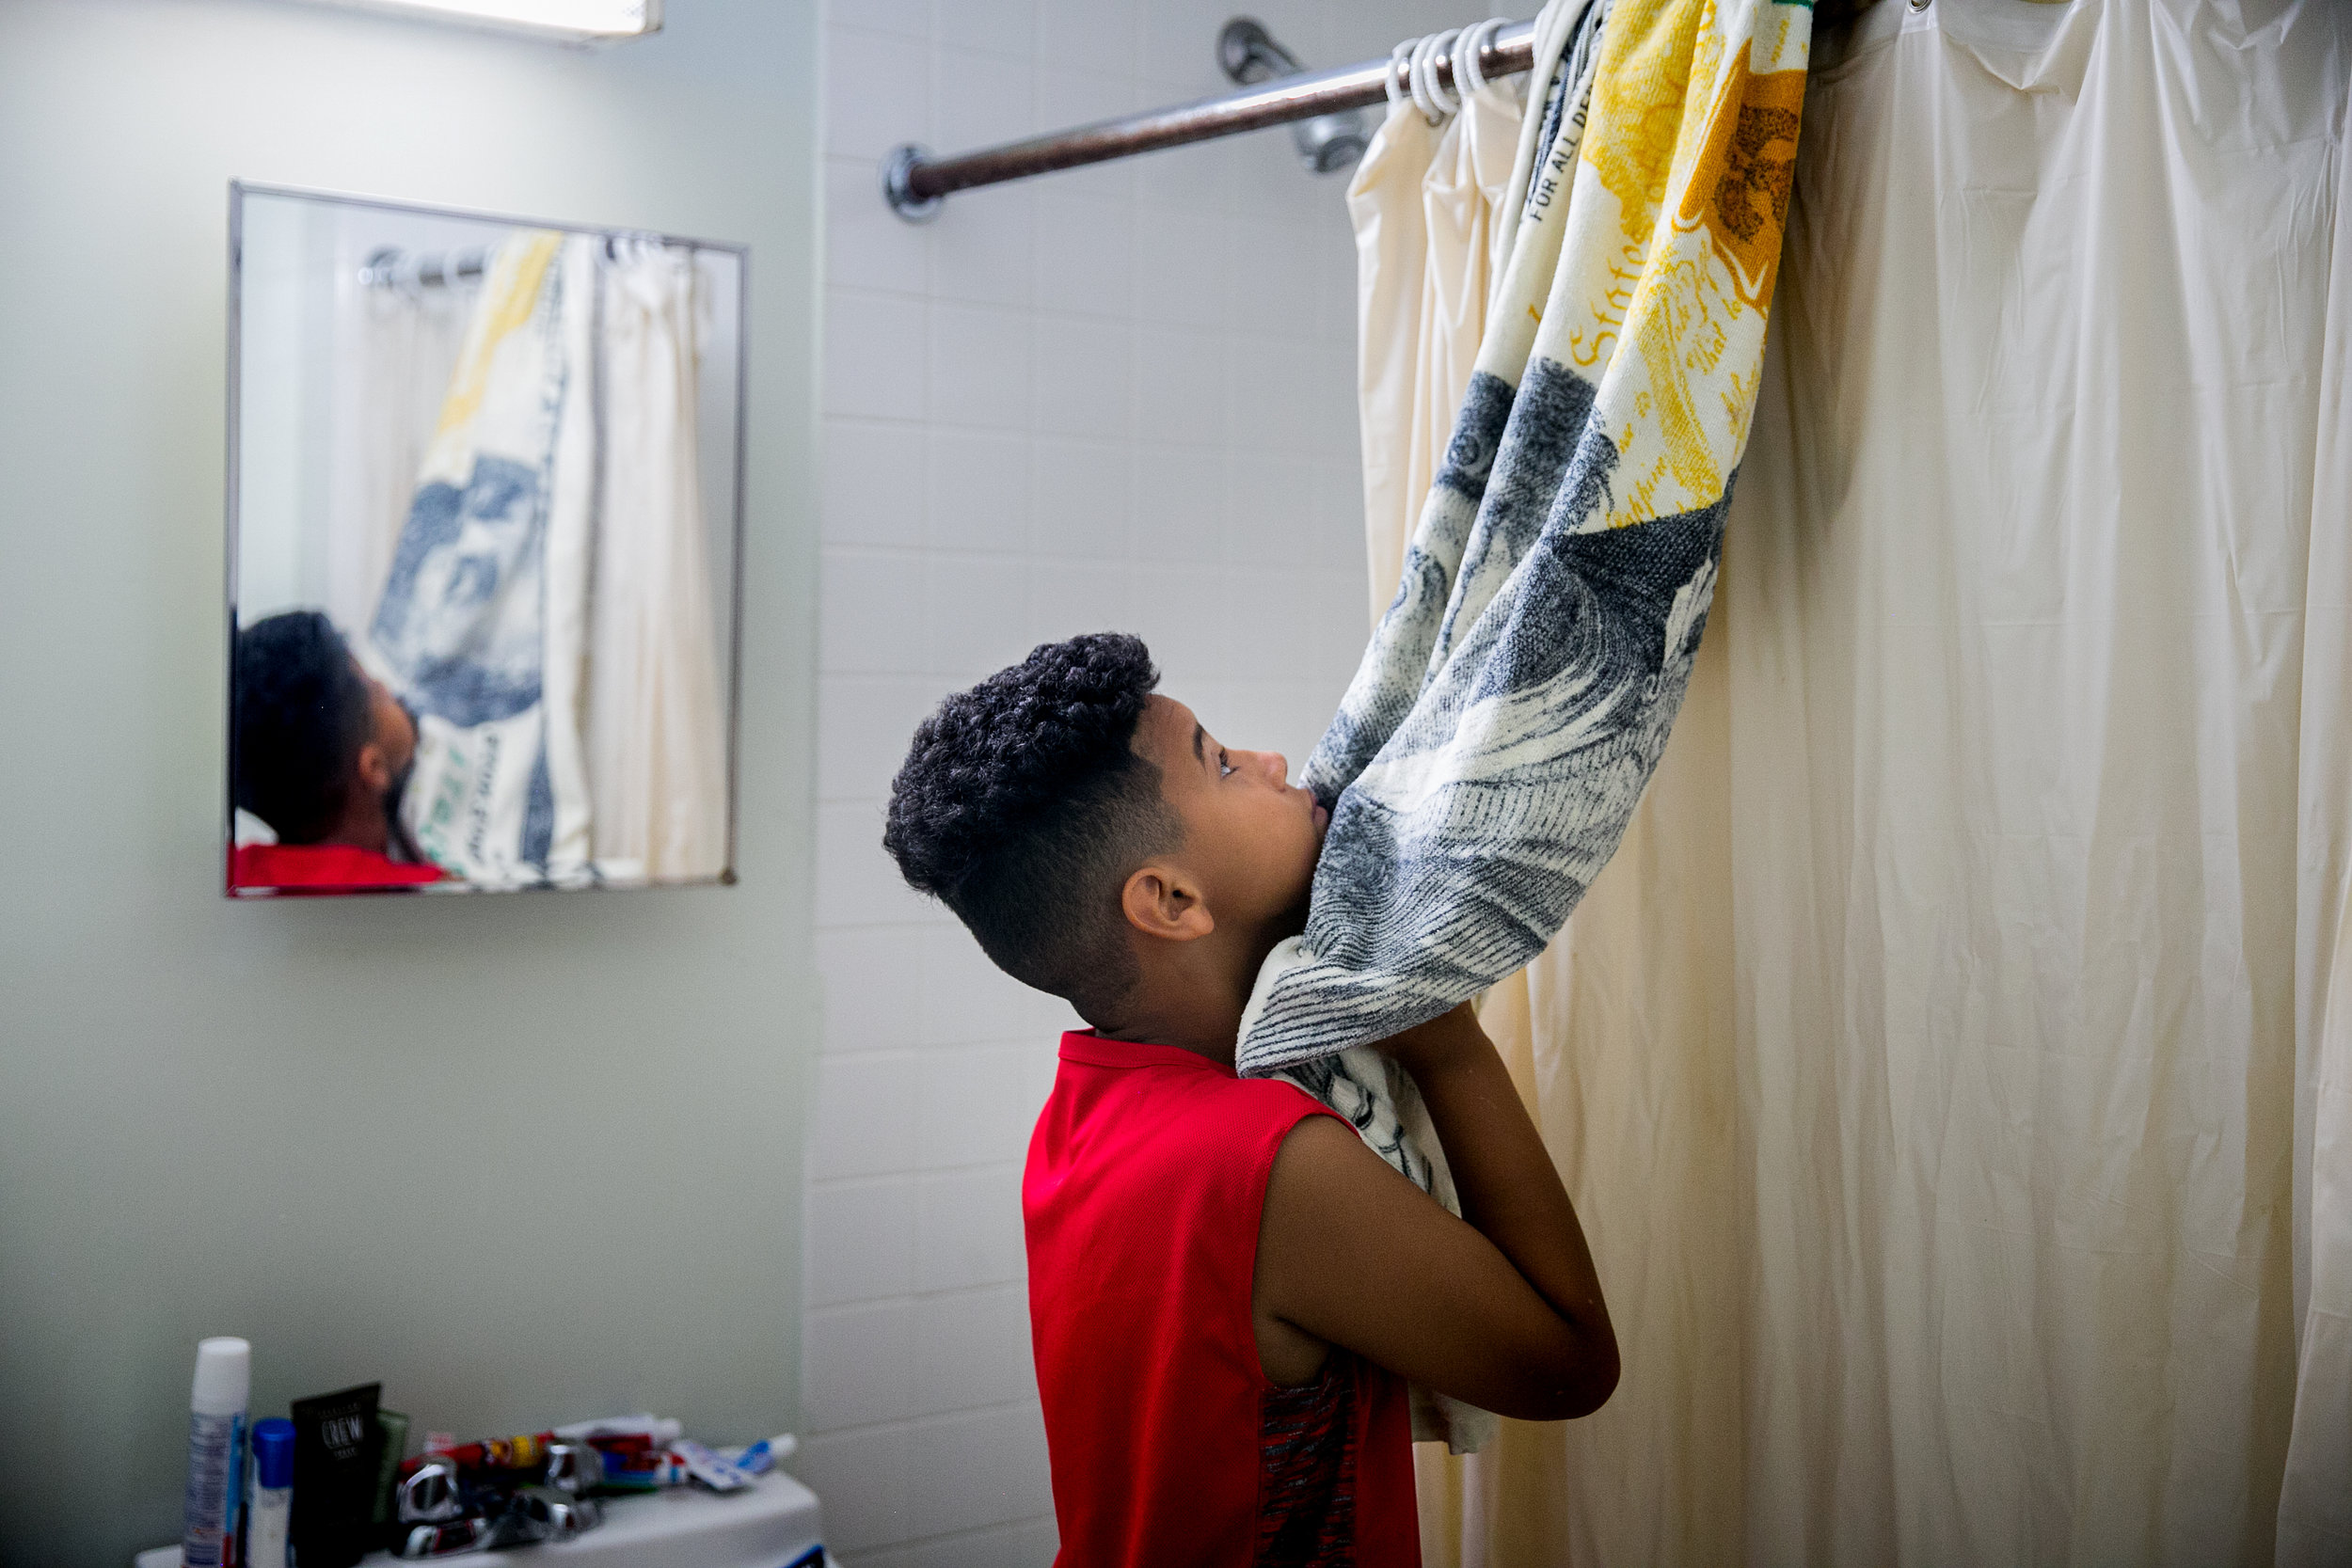 Pedro Cordero Jr. prepares for his day inside the room he shares with his father Pedro Cordero at a homeless shelter in Brooklyn, New York